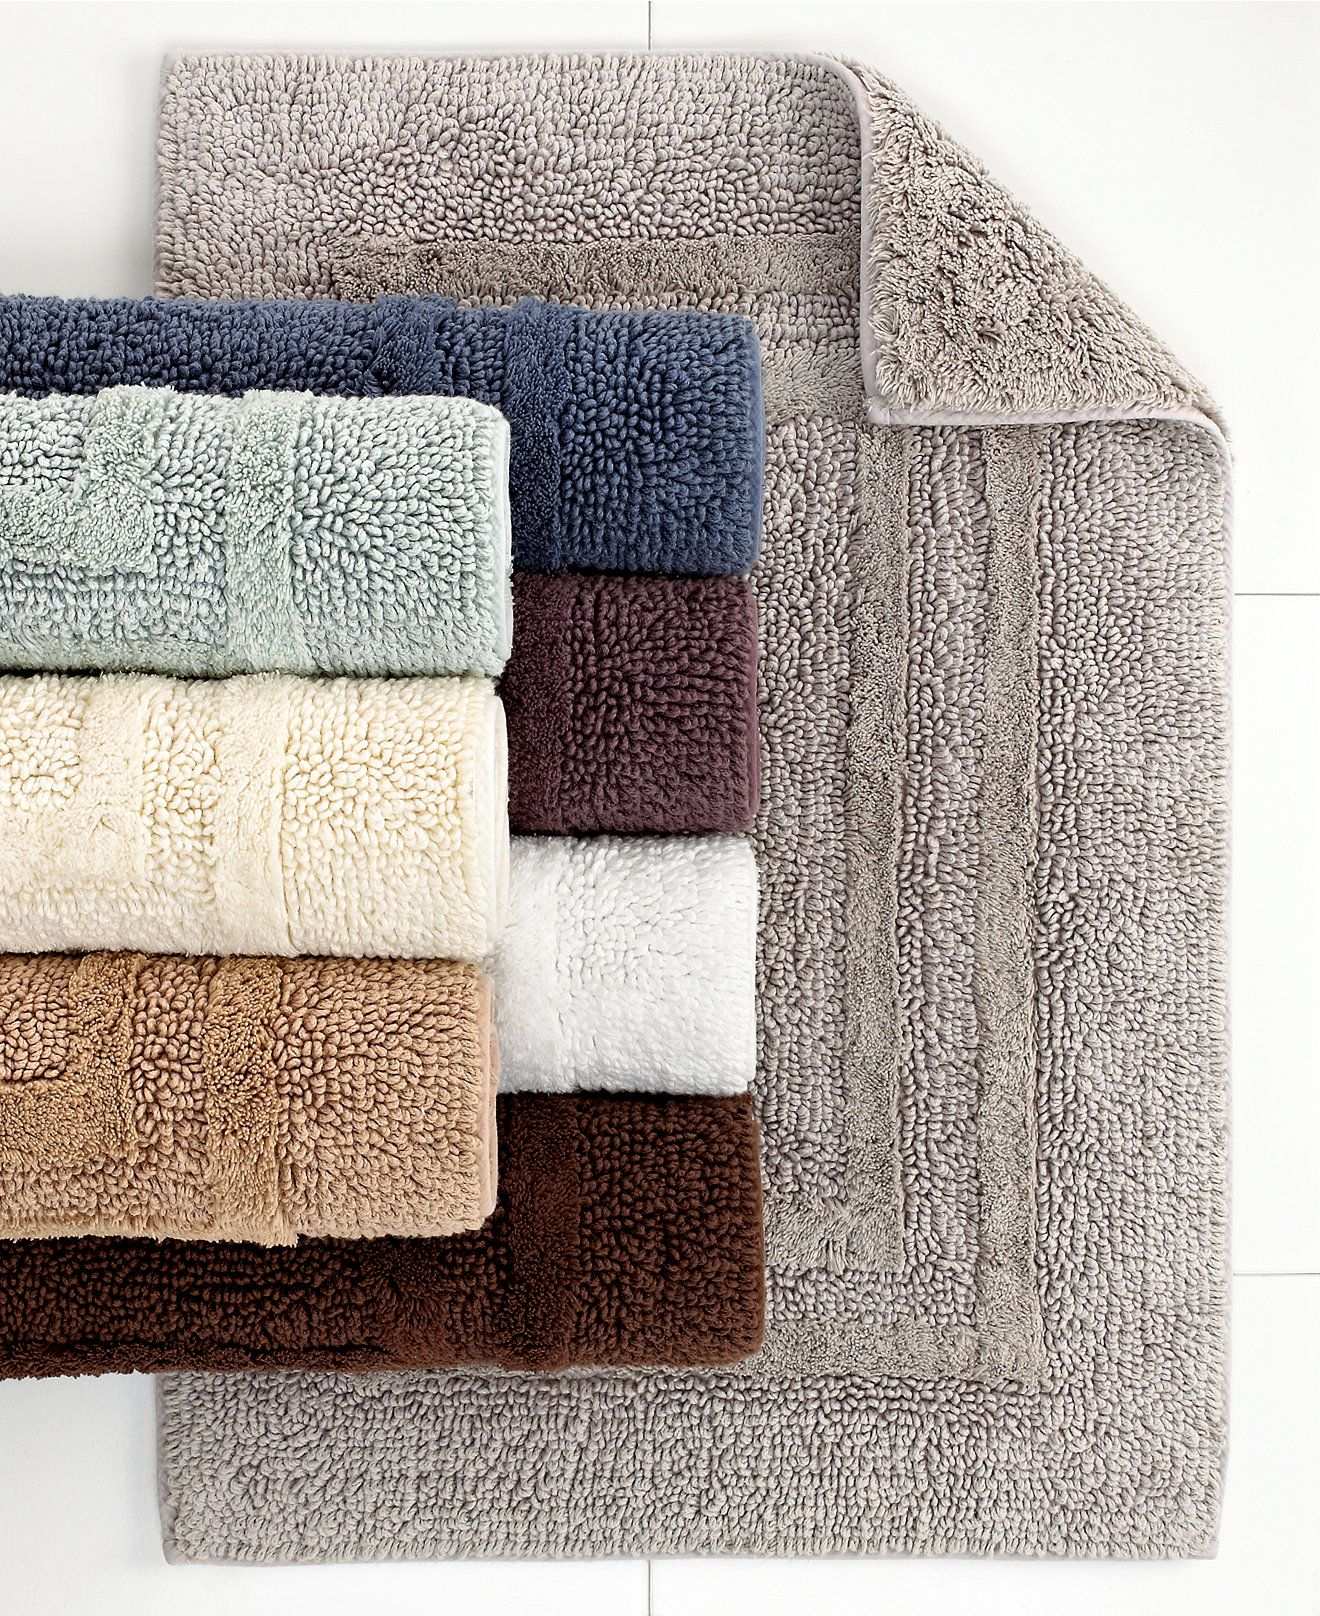 Hotel Collection Cotton Reversible Bath Rugs Cotton Created - Reversible bathroom rugs for bathroom decorating ideas